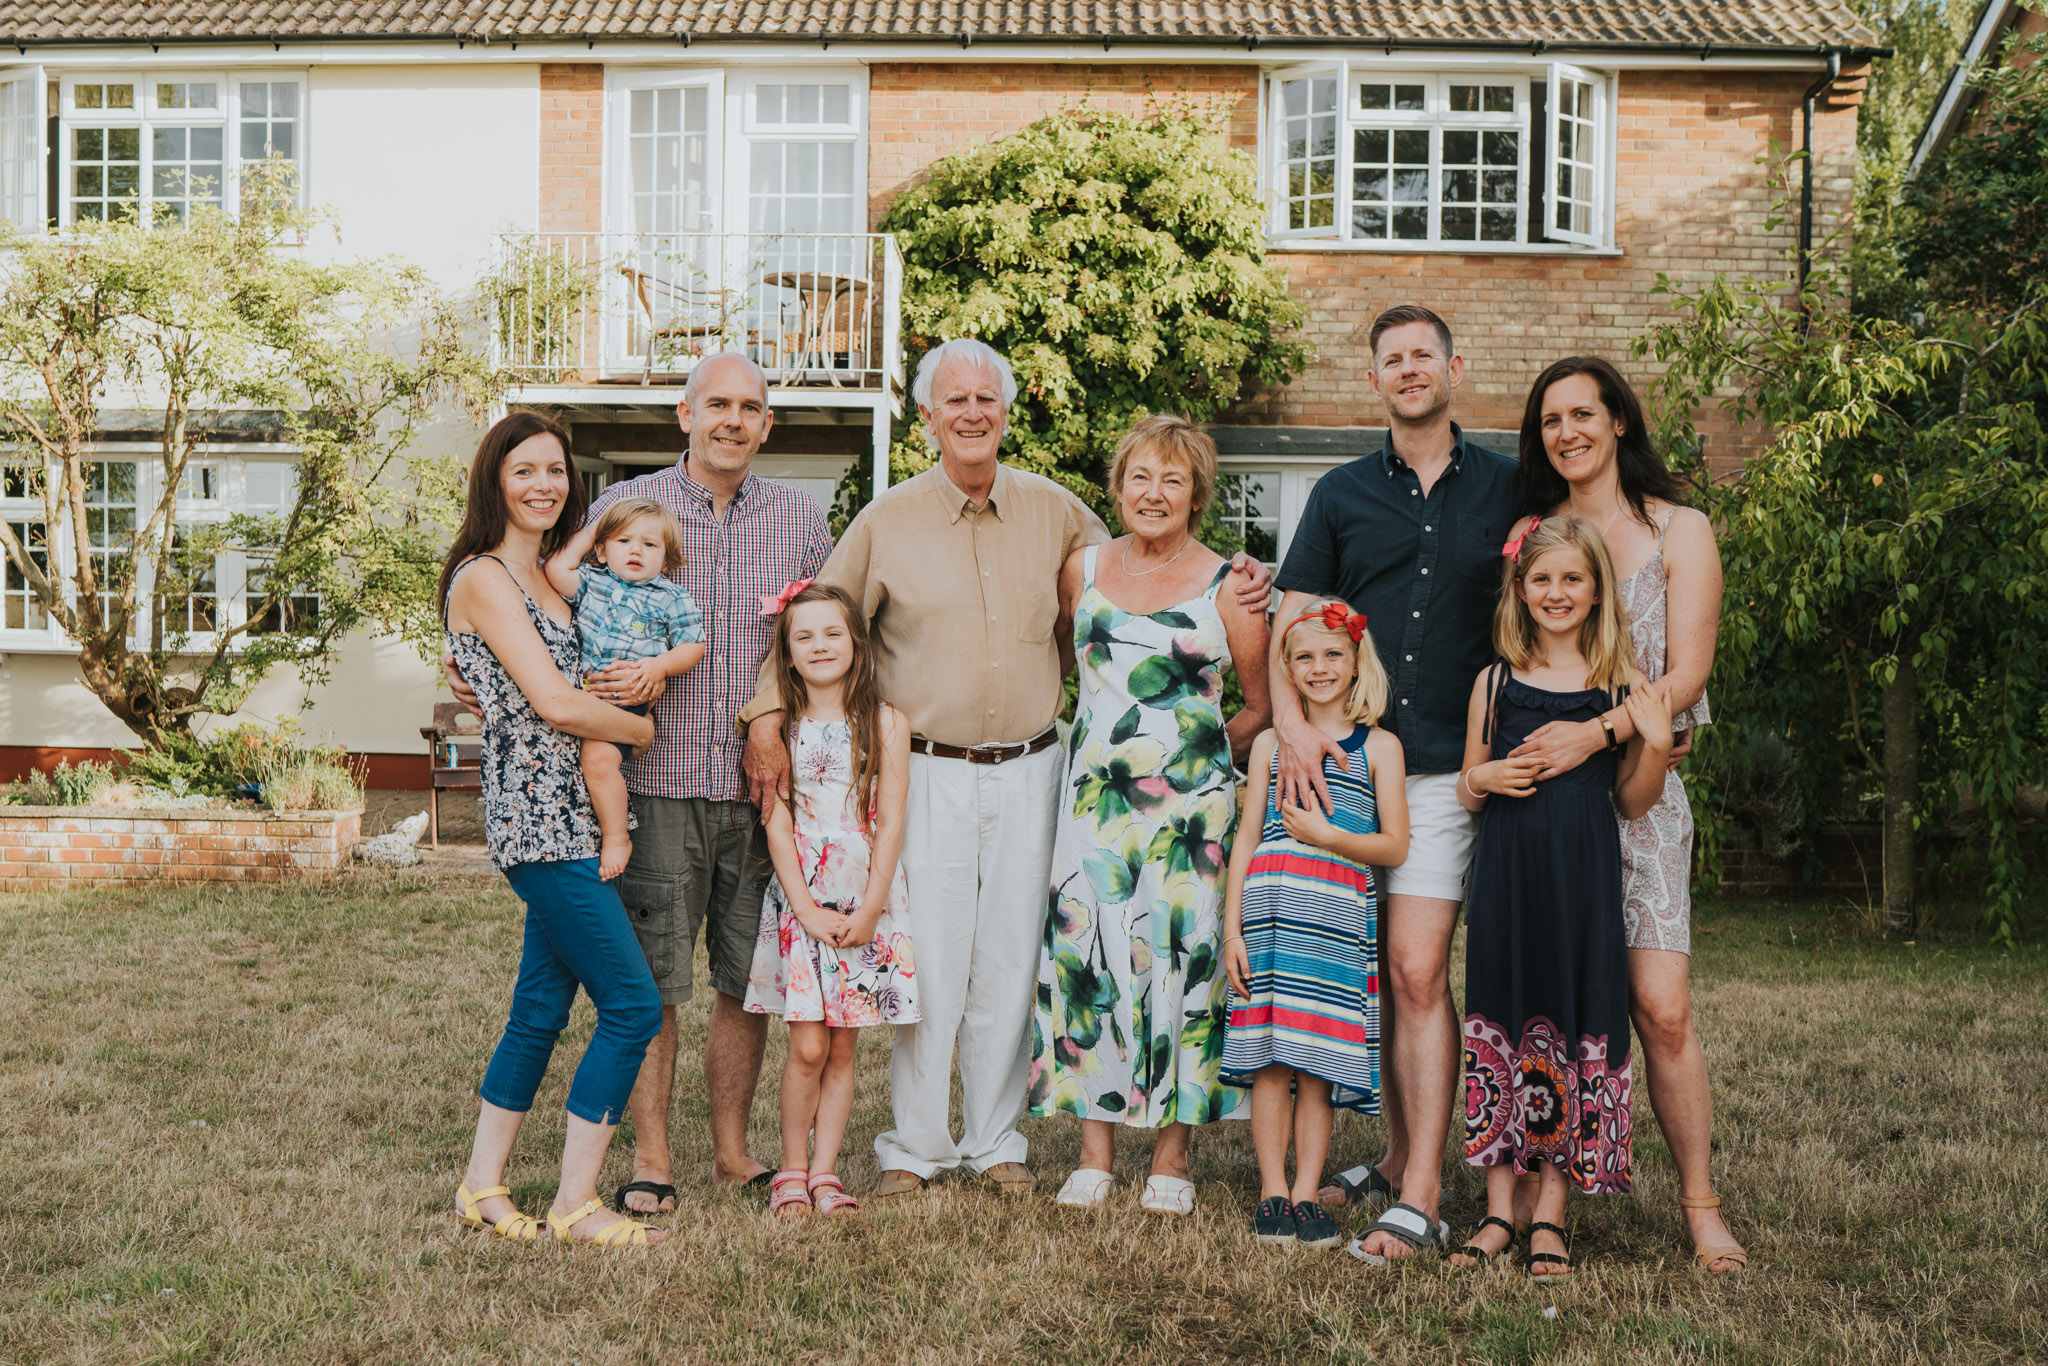 BARKER FAMILY - This year we had a special reunion. Our extended family was getting together for the first time in two years, and we wanted to capture it.We researched photographers and booked Grace as we loved her pictures and she was a local! She responded quickly to our original booking and had a really relaxed manner. She liked to chat personally which I loved and we spent ages on the phone so she could find out the type of photos we wanted, who was involved, the story behind them etc. I realise now how important this was to make the final outcome have real meaning.In addition, our price included all edited high and low res photos to usb. This had big appeal as we didn't want to limit our choice and make hard decisions at the end which you have to with many photographers nowadays.When she arrived she was calm and professional. Grace put everyone at ease. Sometimes taking our lead and sometimes directing us gently but clearly with loads of praise and laughs. Therefore she got the best out of old and young who had lots of different temperaments!! She also stayed over time without batting an eye lid.The result was gorgeous pictures that captured the heart of our family and the essence of the day, making new memories to look back on. I only wish we had done an all day session then we'd have even more!